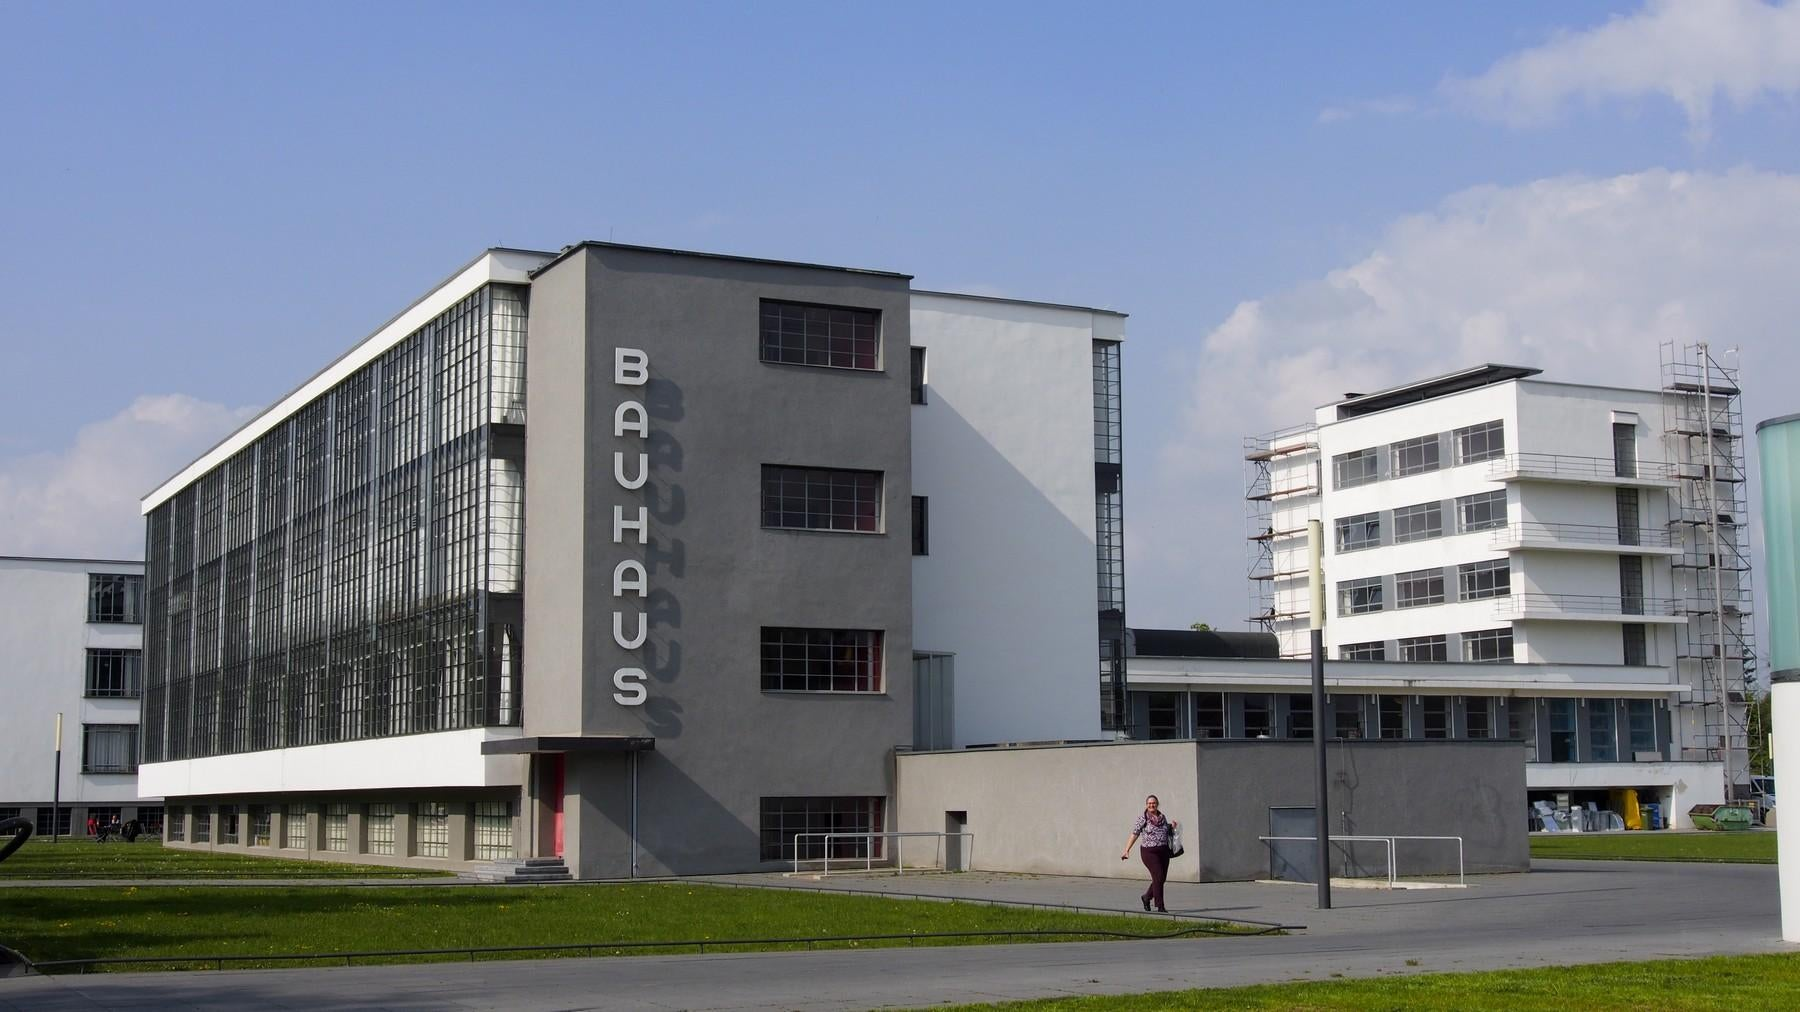 Commercial Building in Dessau